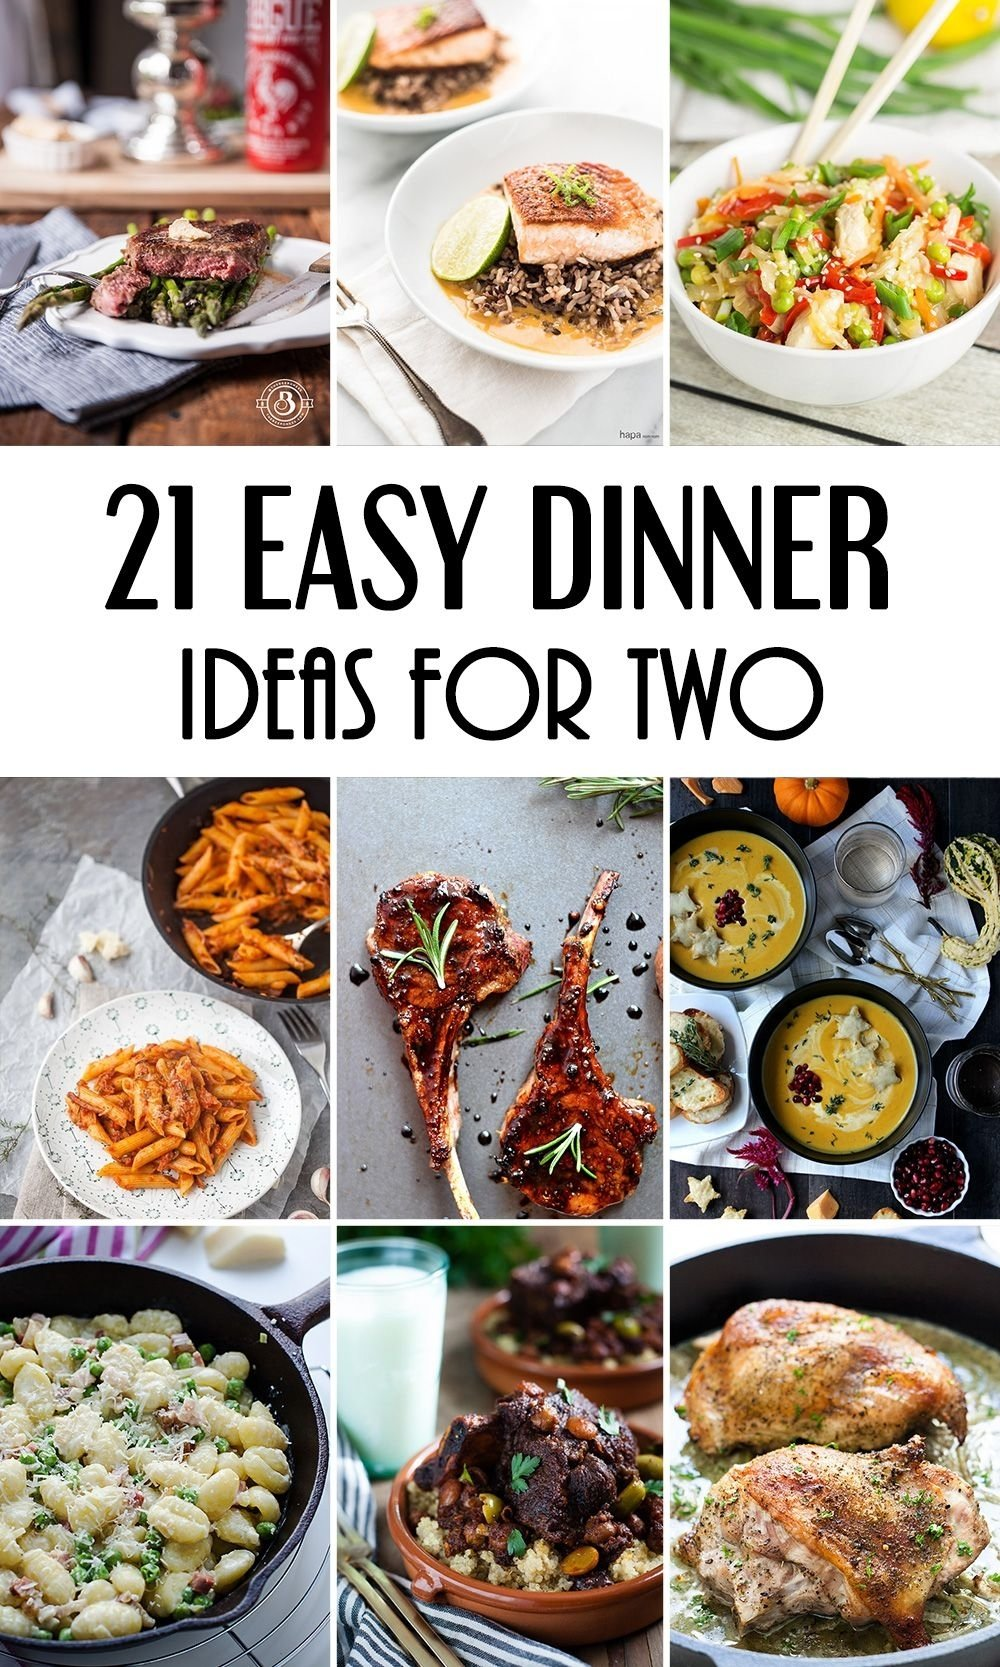 10 Cute Dinner Ideas For Two Cheap 21 easy dinner ideas for two that will impress your loved one 26 2020